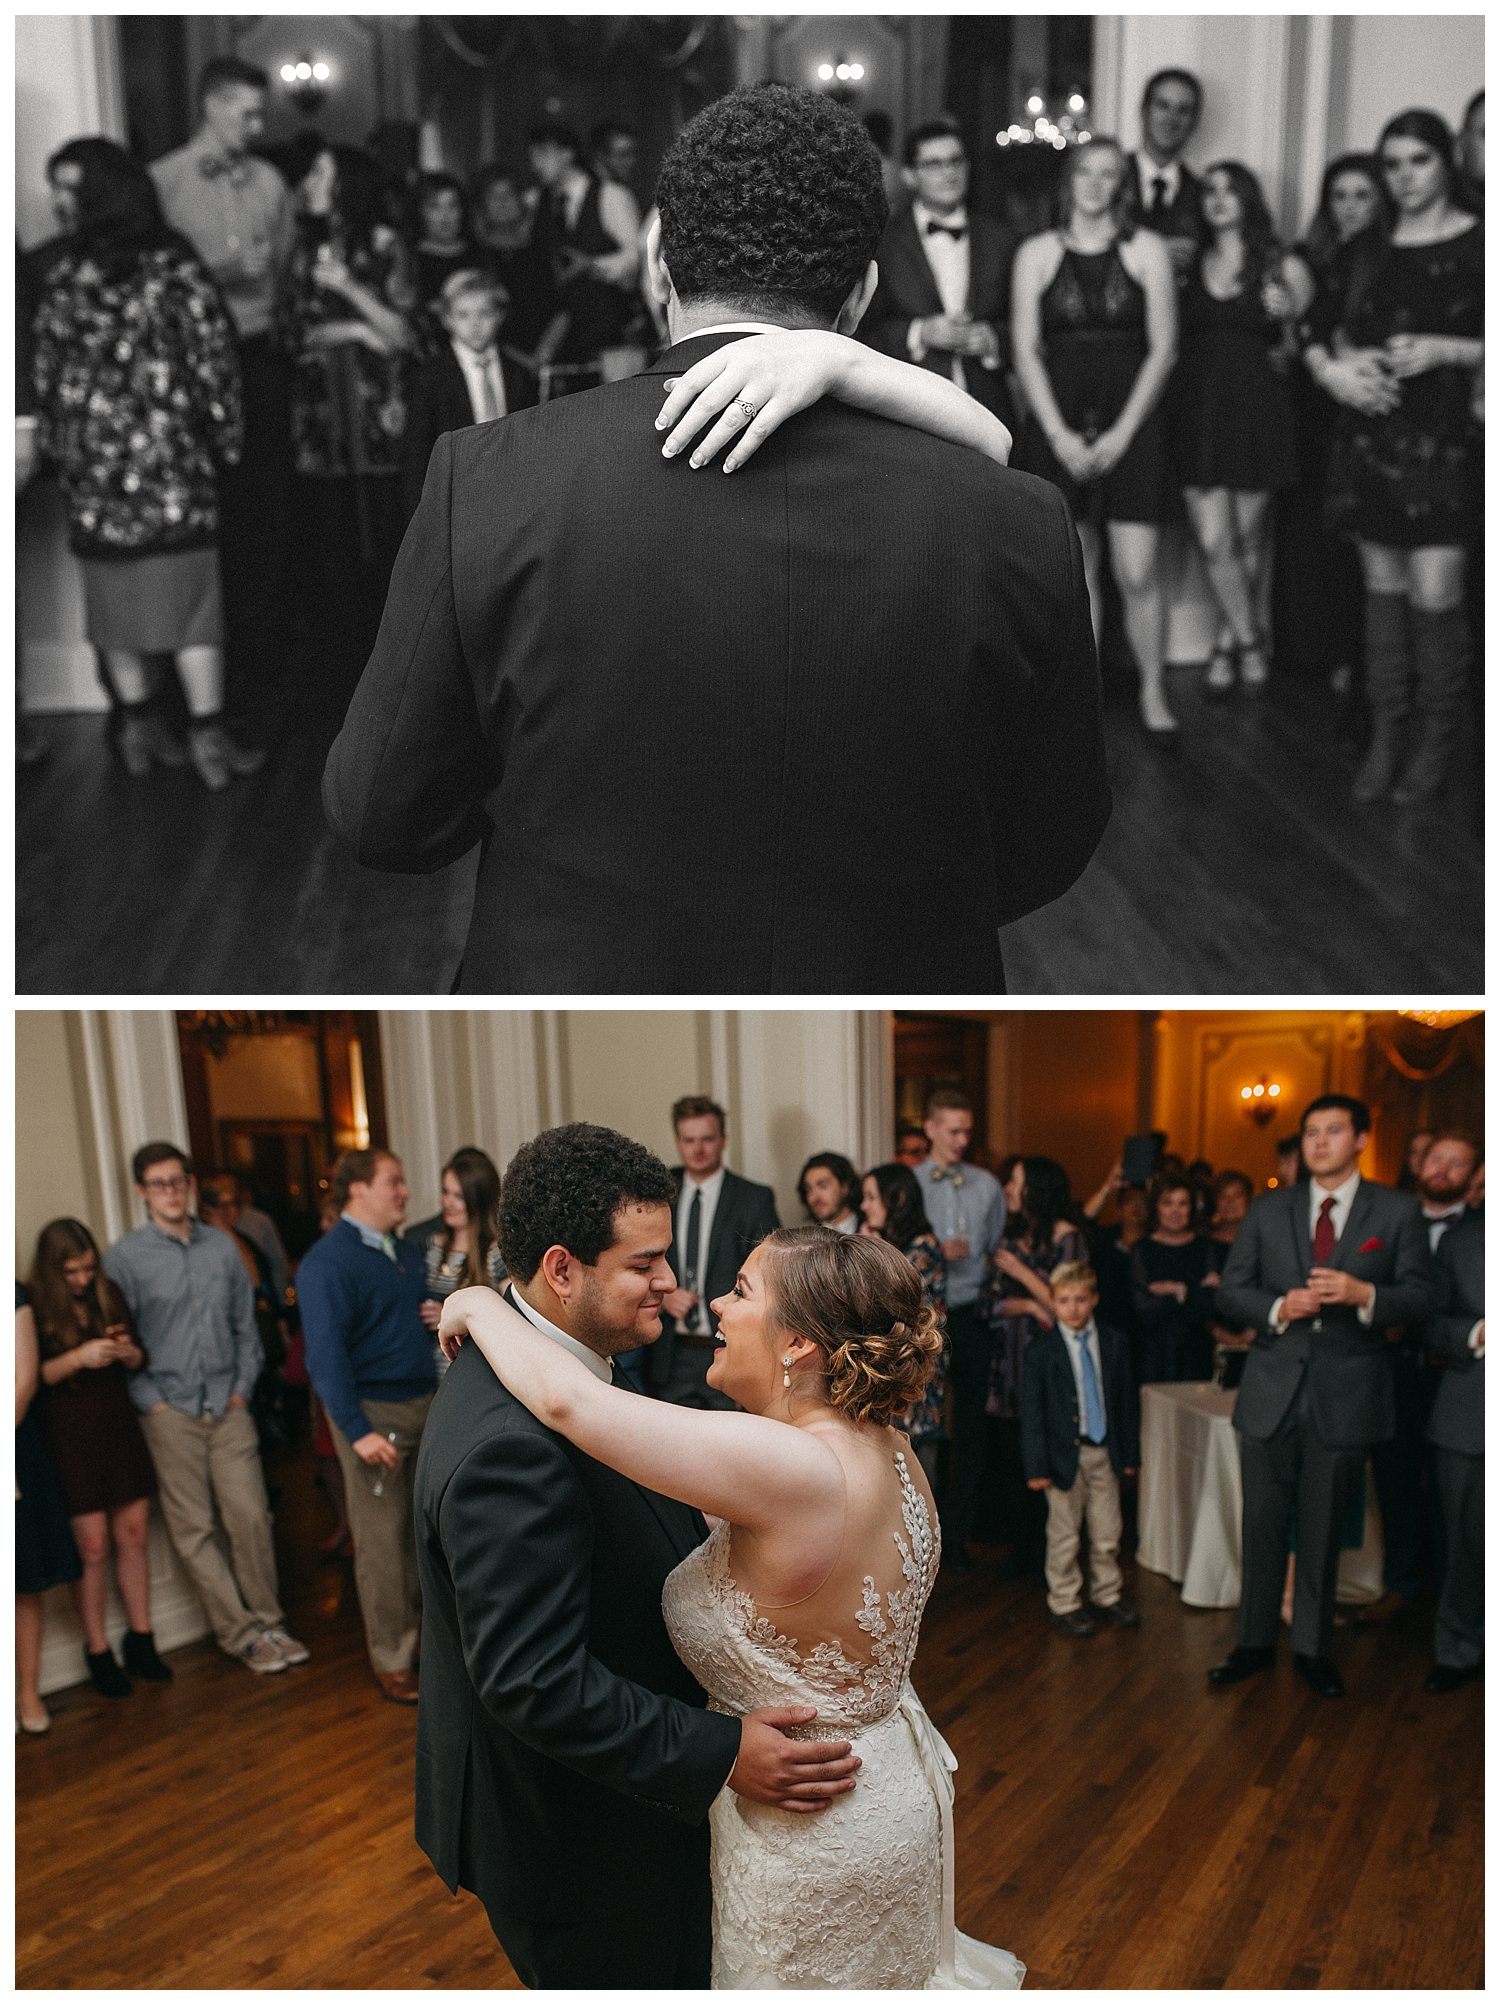 Kelsey_Diane_Photography_Loose_Mansion_Wedding_Photography_Kansas_City_Victor_Lyndsay_0166.jpg